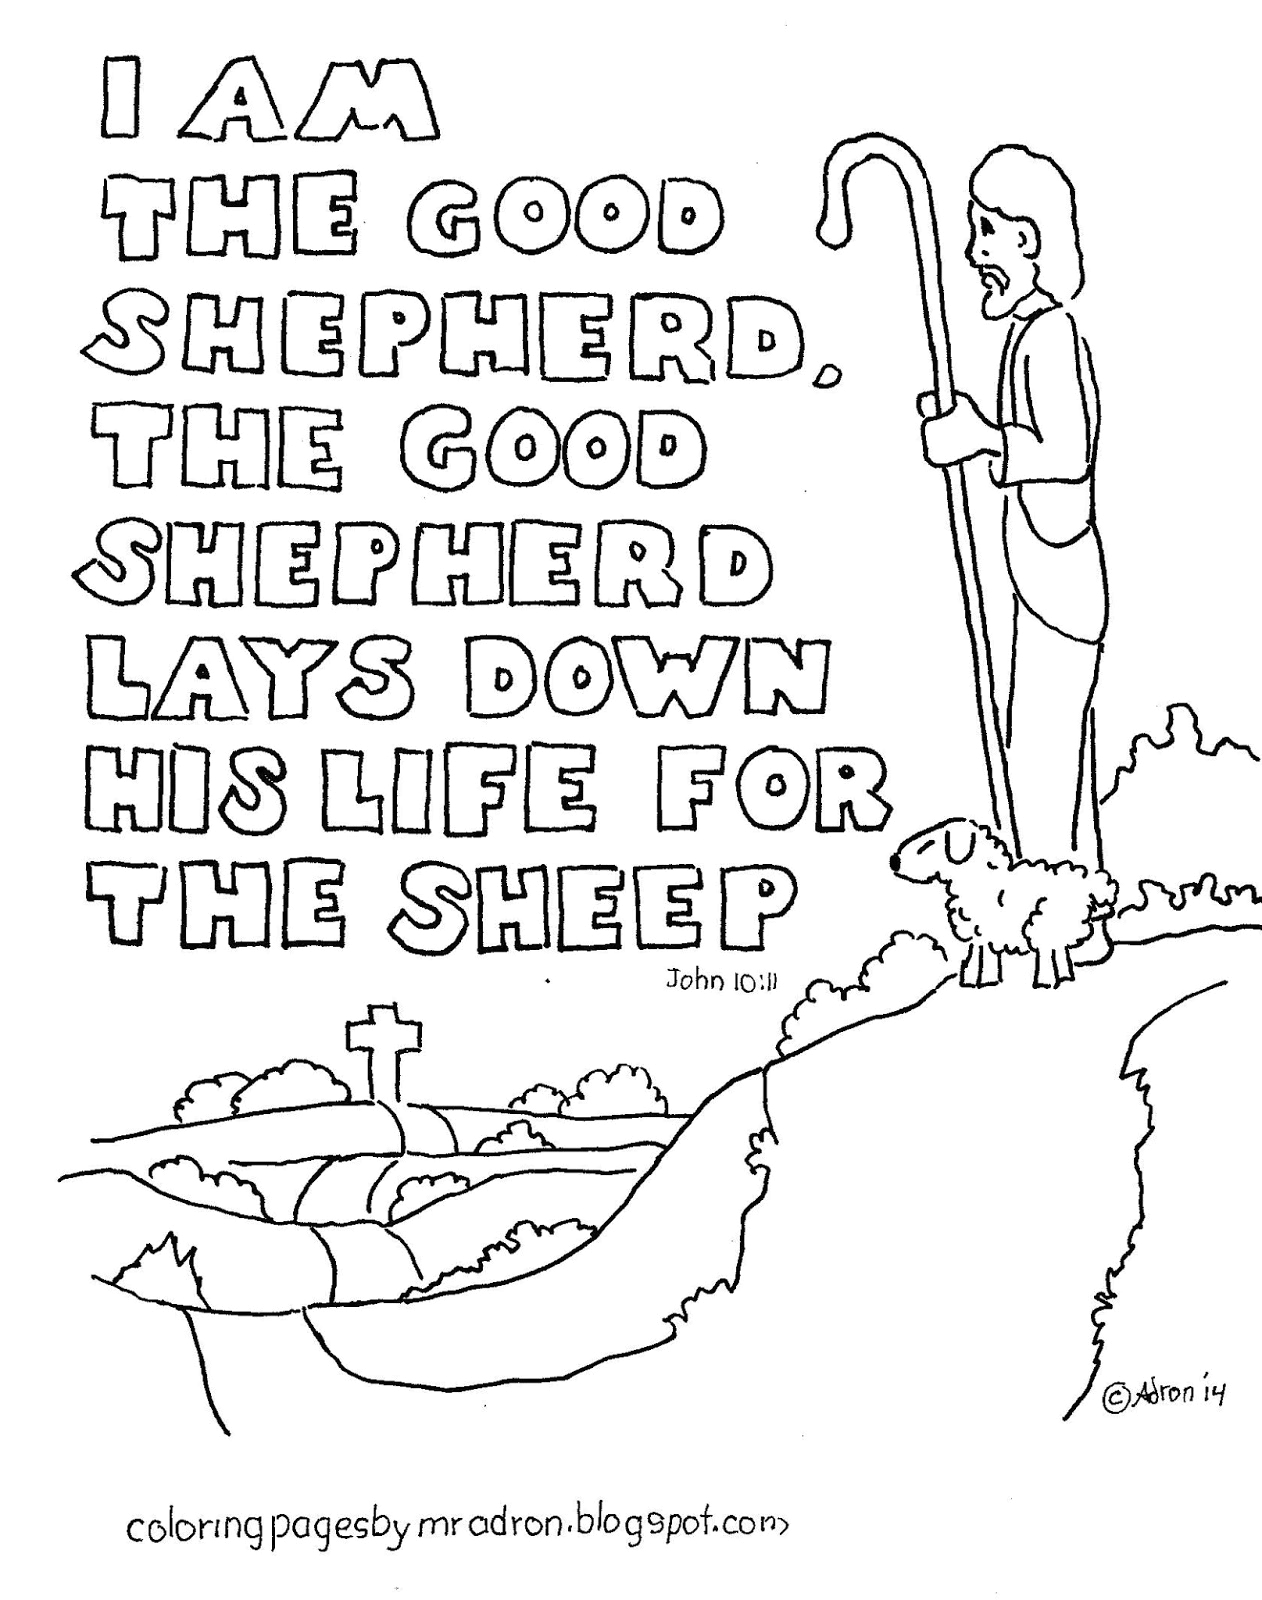 I Am the Good Shepherd Coloring Pages Coloring Pages for Kids by Mr Adron I Am the Good